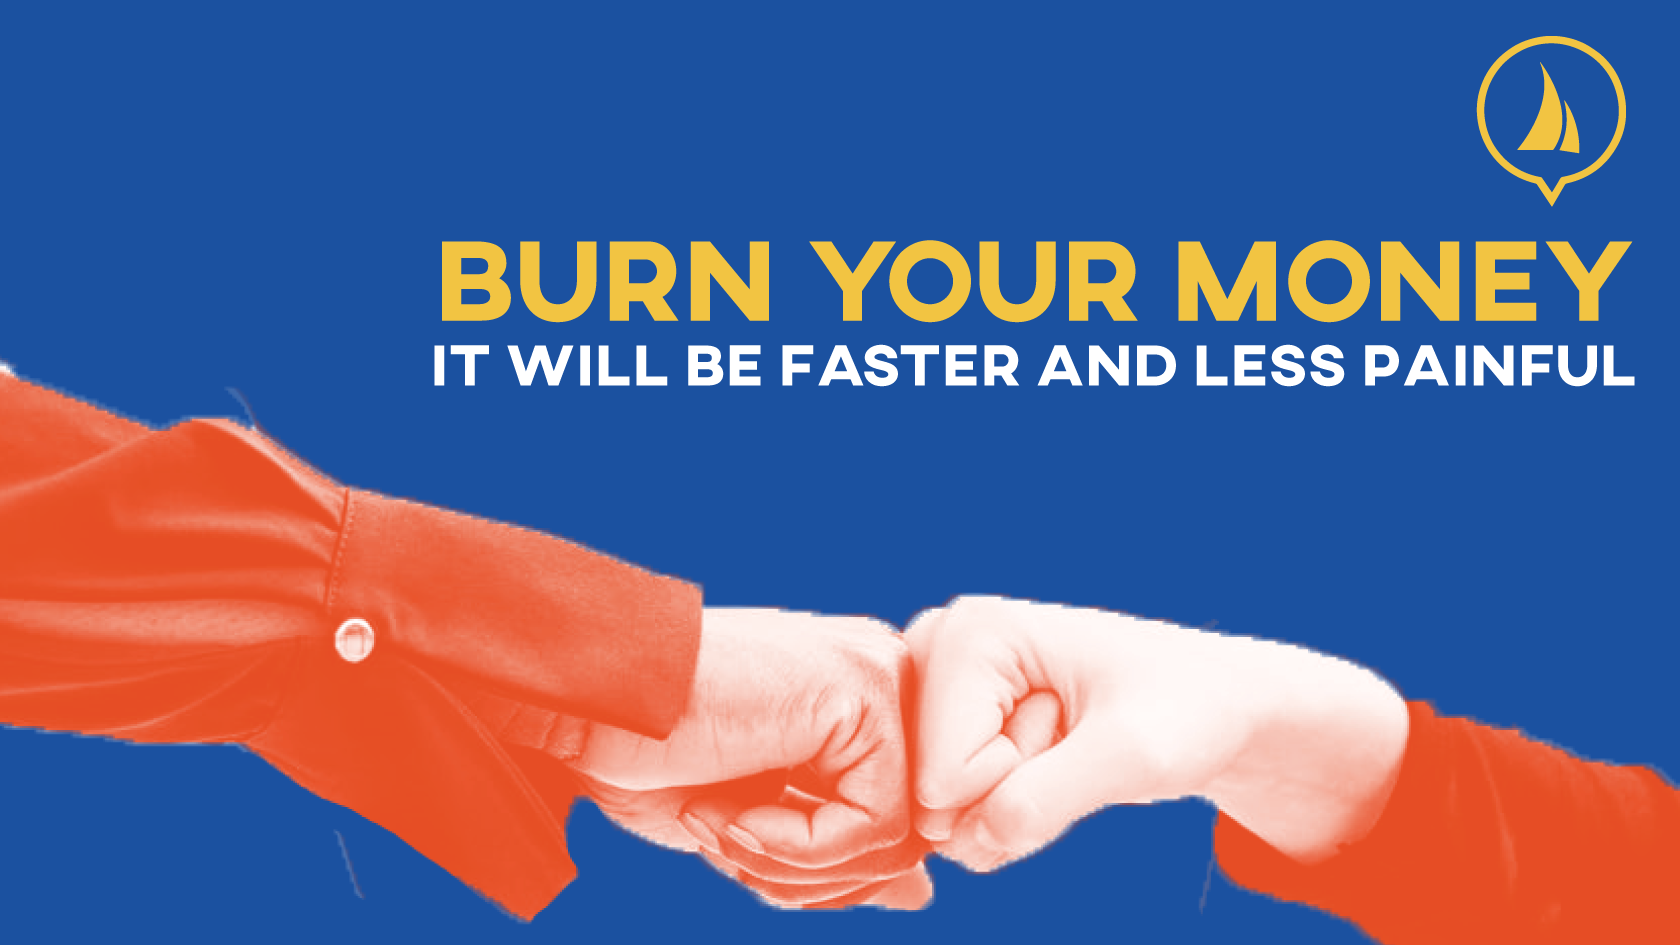 burn-your-money-it-will-be-faster-and-less-painful---if-freelance-work-worth-it-for-your-business---Jib-Sheet-Partners